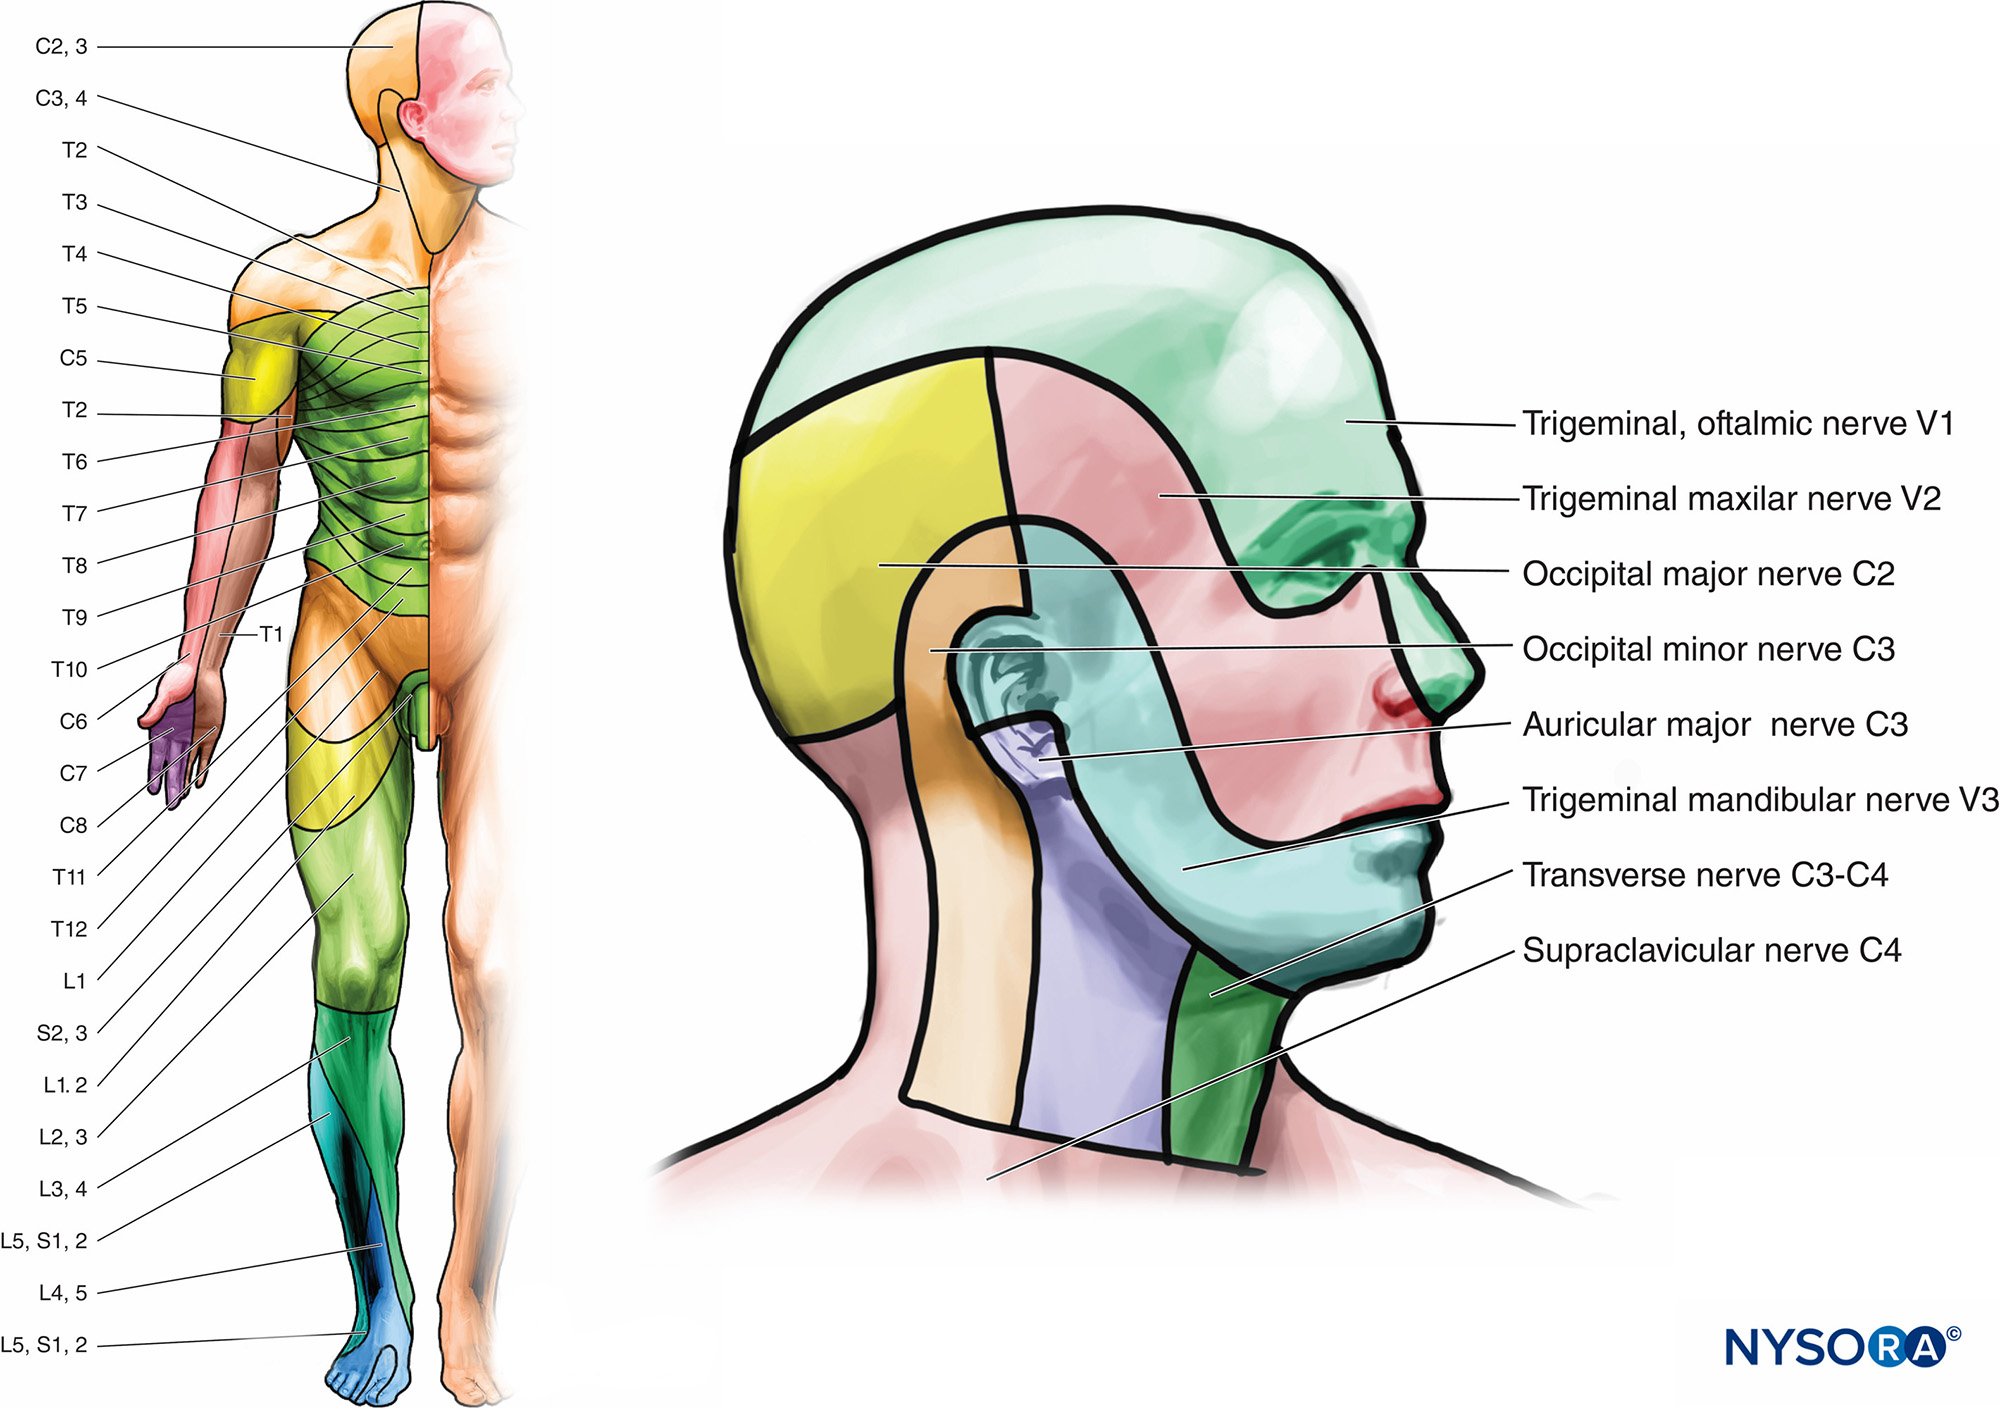 nerves in neck and shoulder diagram answer the questions based on venn functional regional anesthesia anatomy nysora figure 5 a b dermatomes anterior